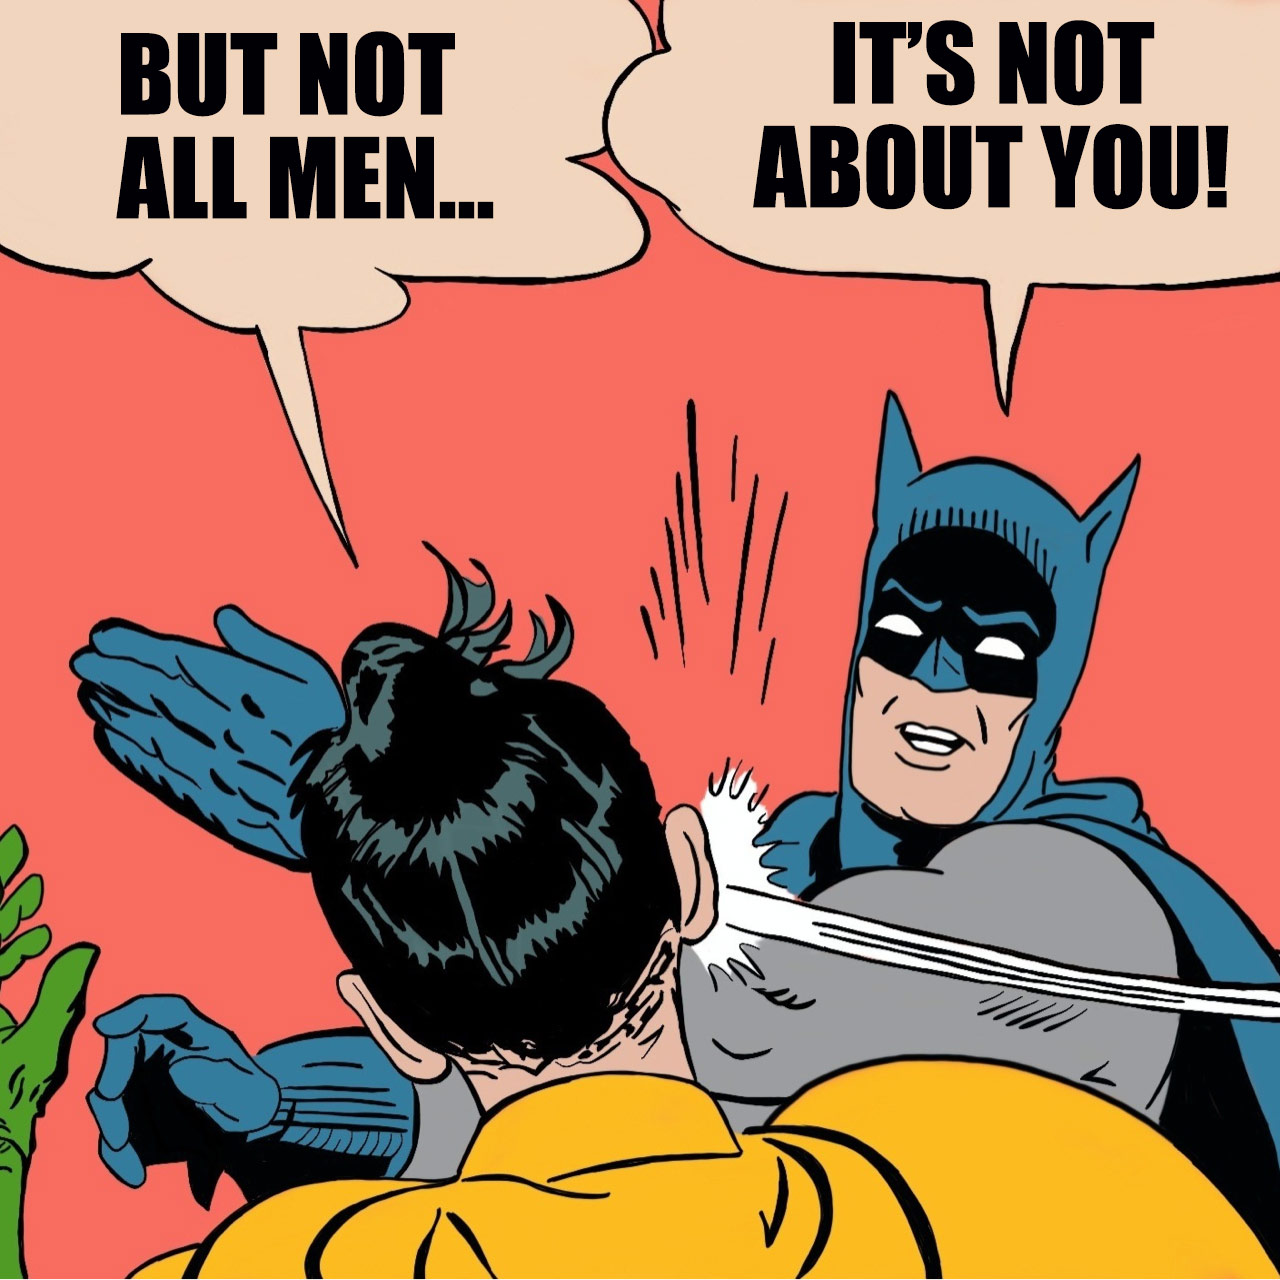 Not all men